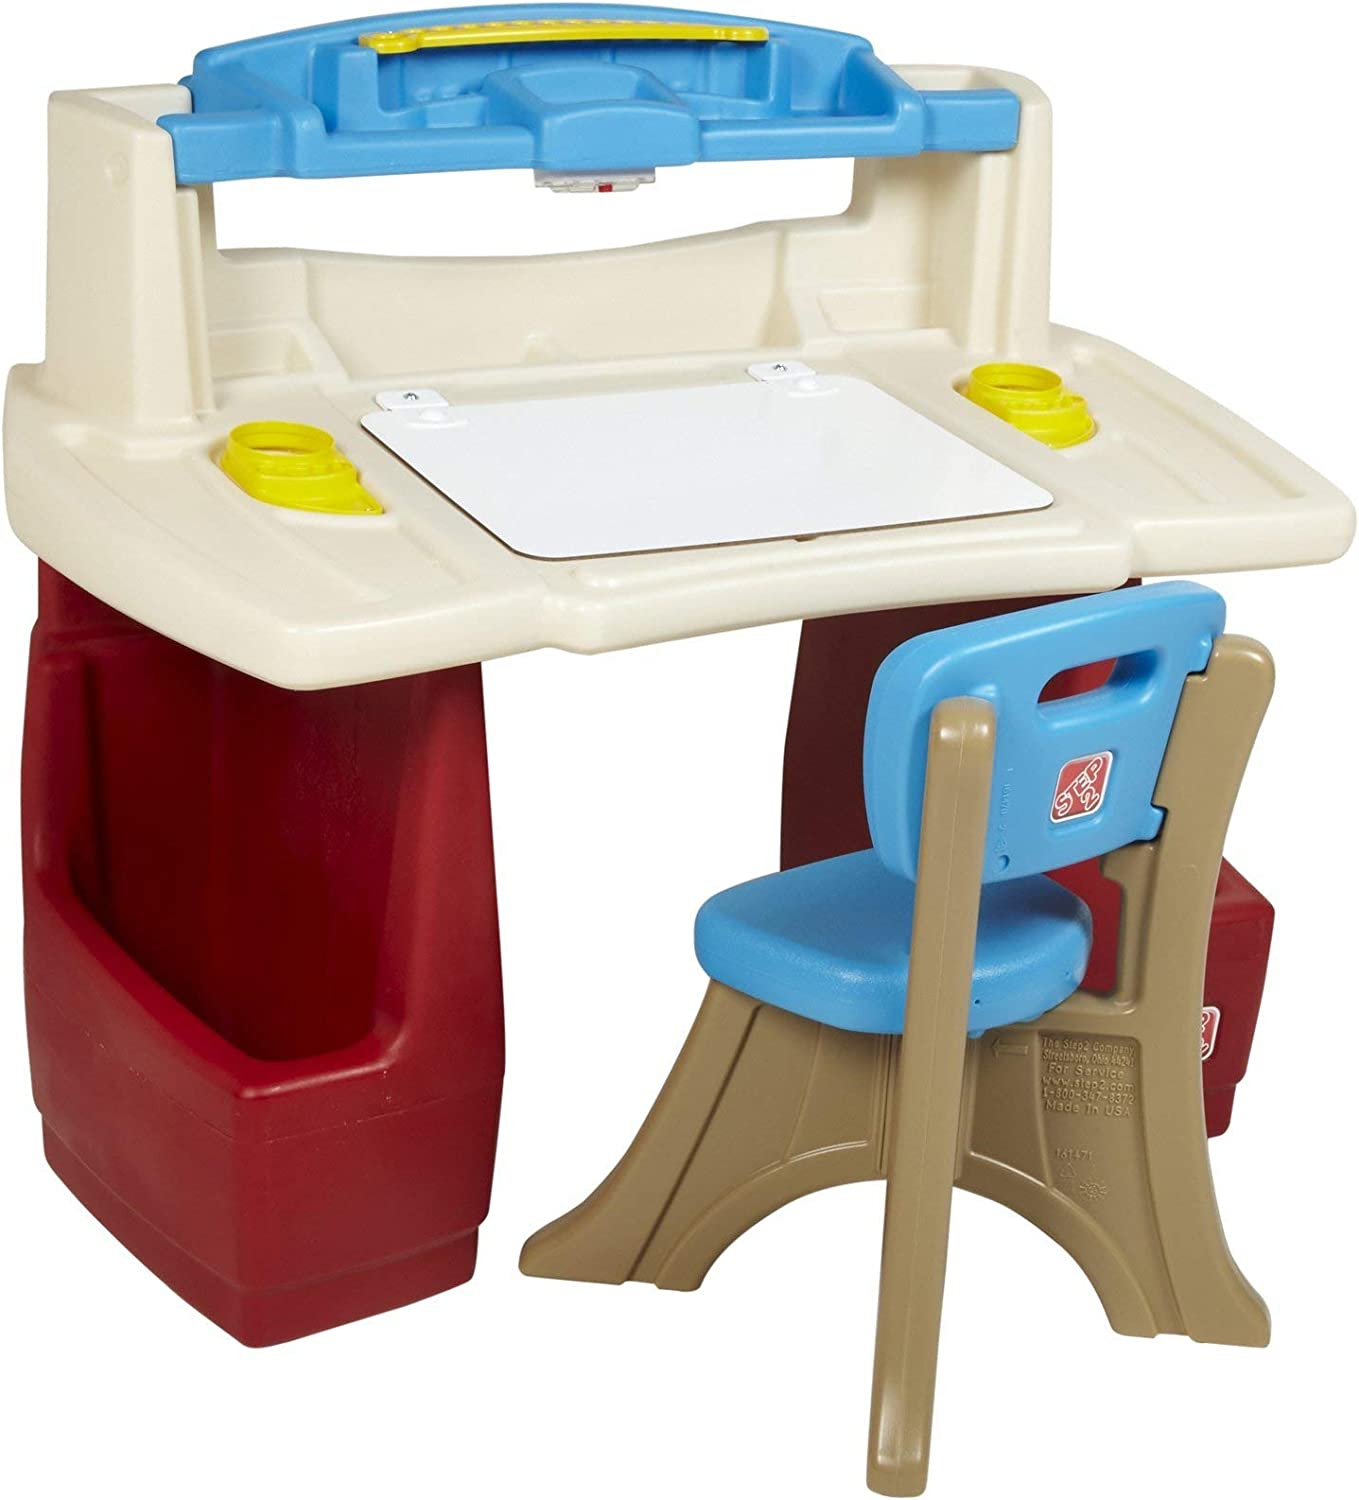 Step2 Deluxe Art Master Kids Desk | Assembles in Minutes